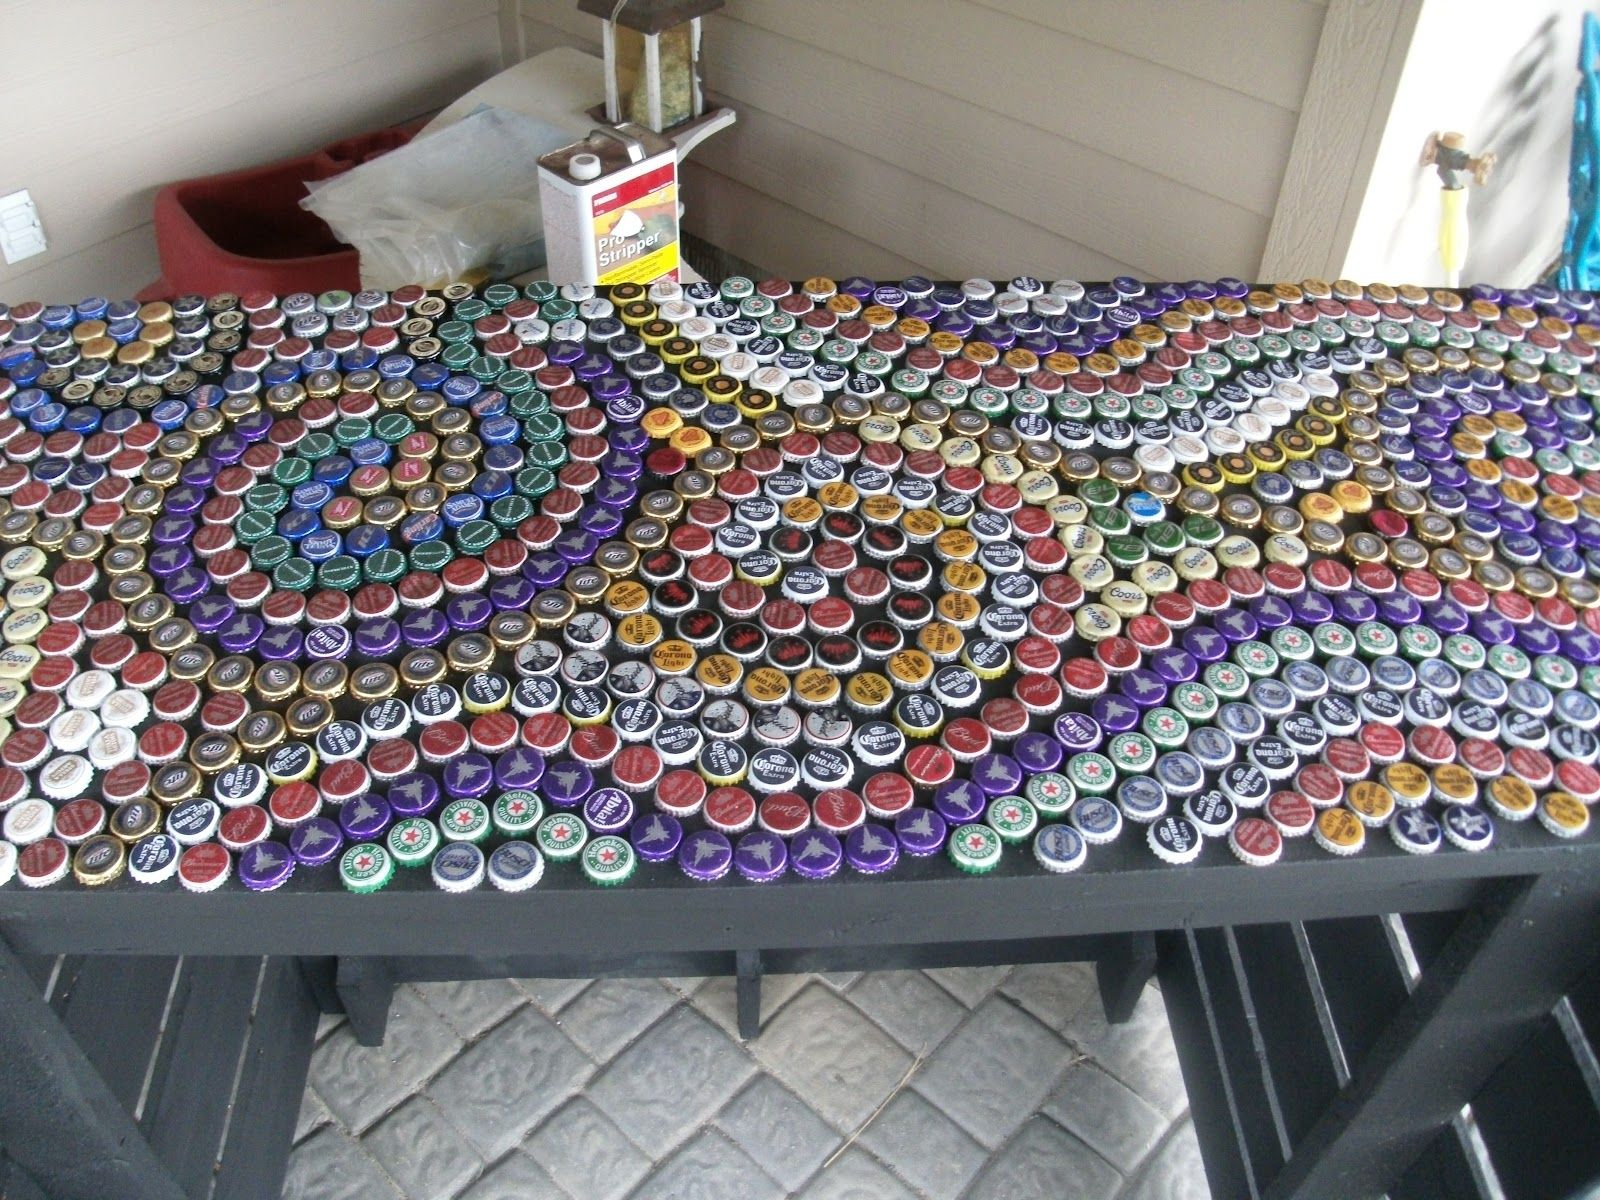 Bottle Cap Wall Art beer bottle cap art crafts | postedmallorydanielsen at 2:49 pm